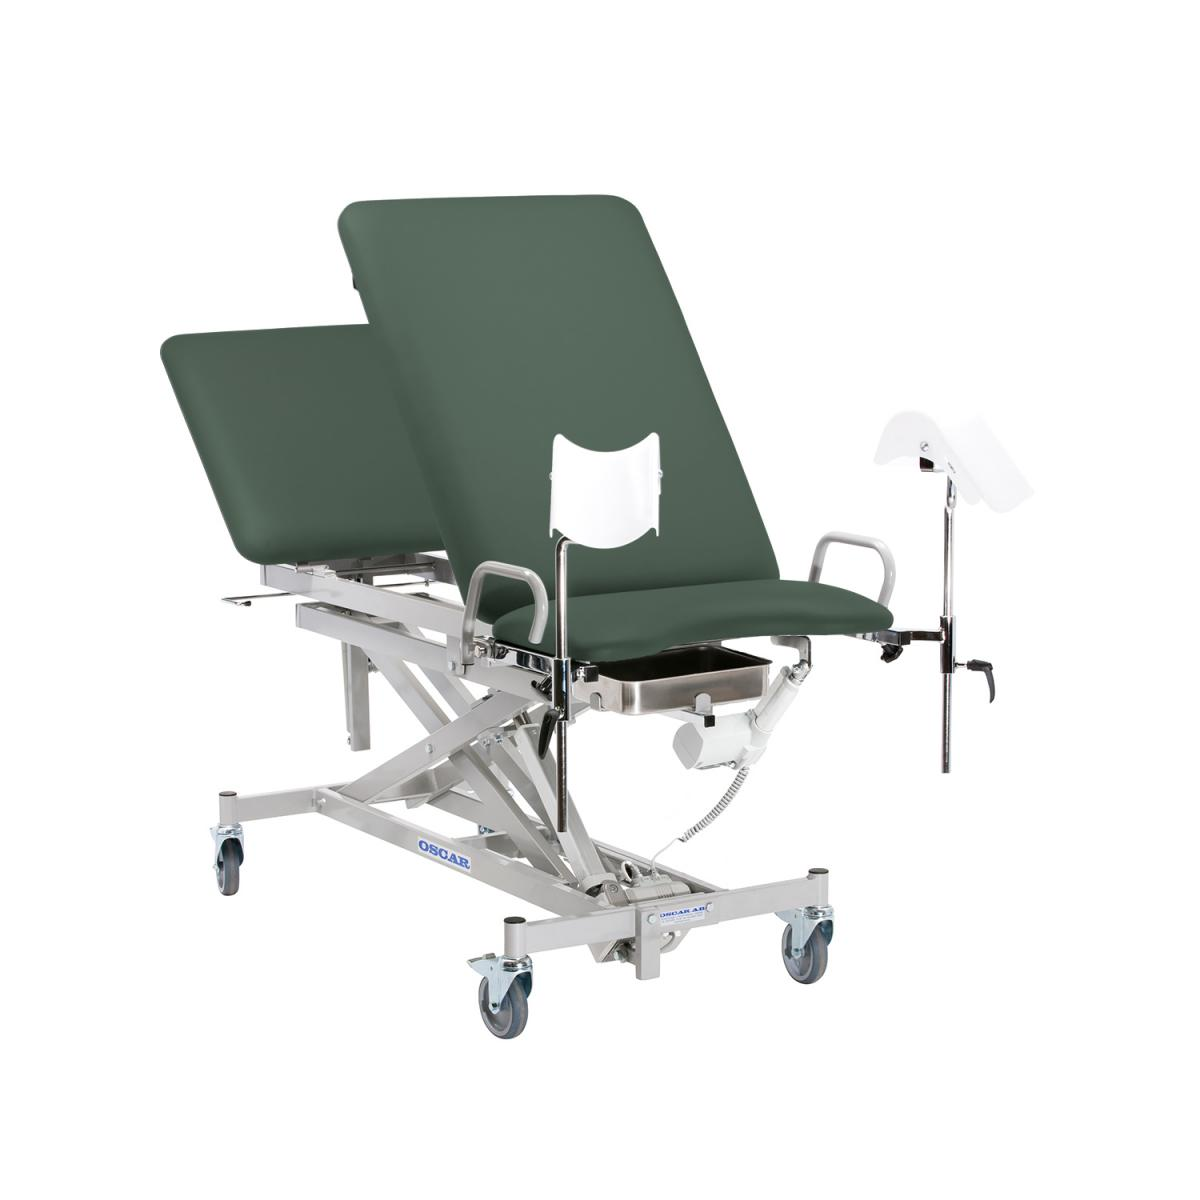 Examination table Special, Gynaecological combi